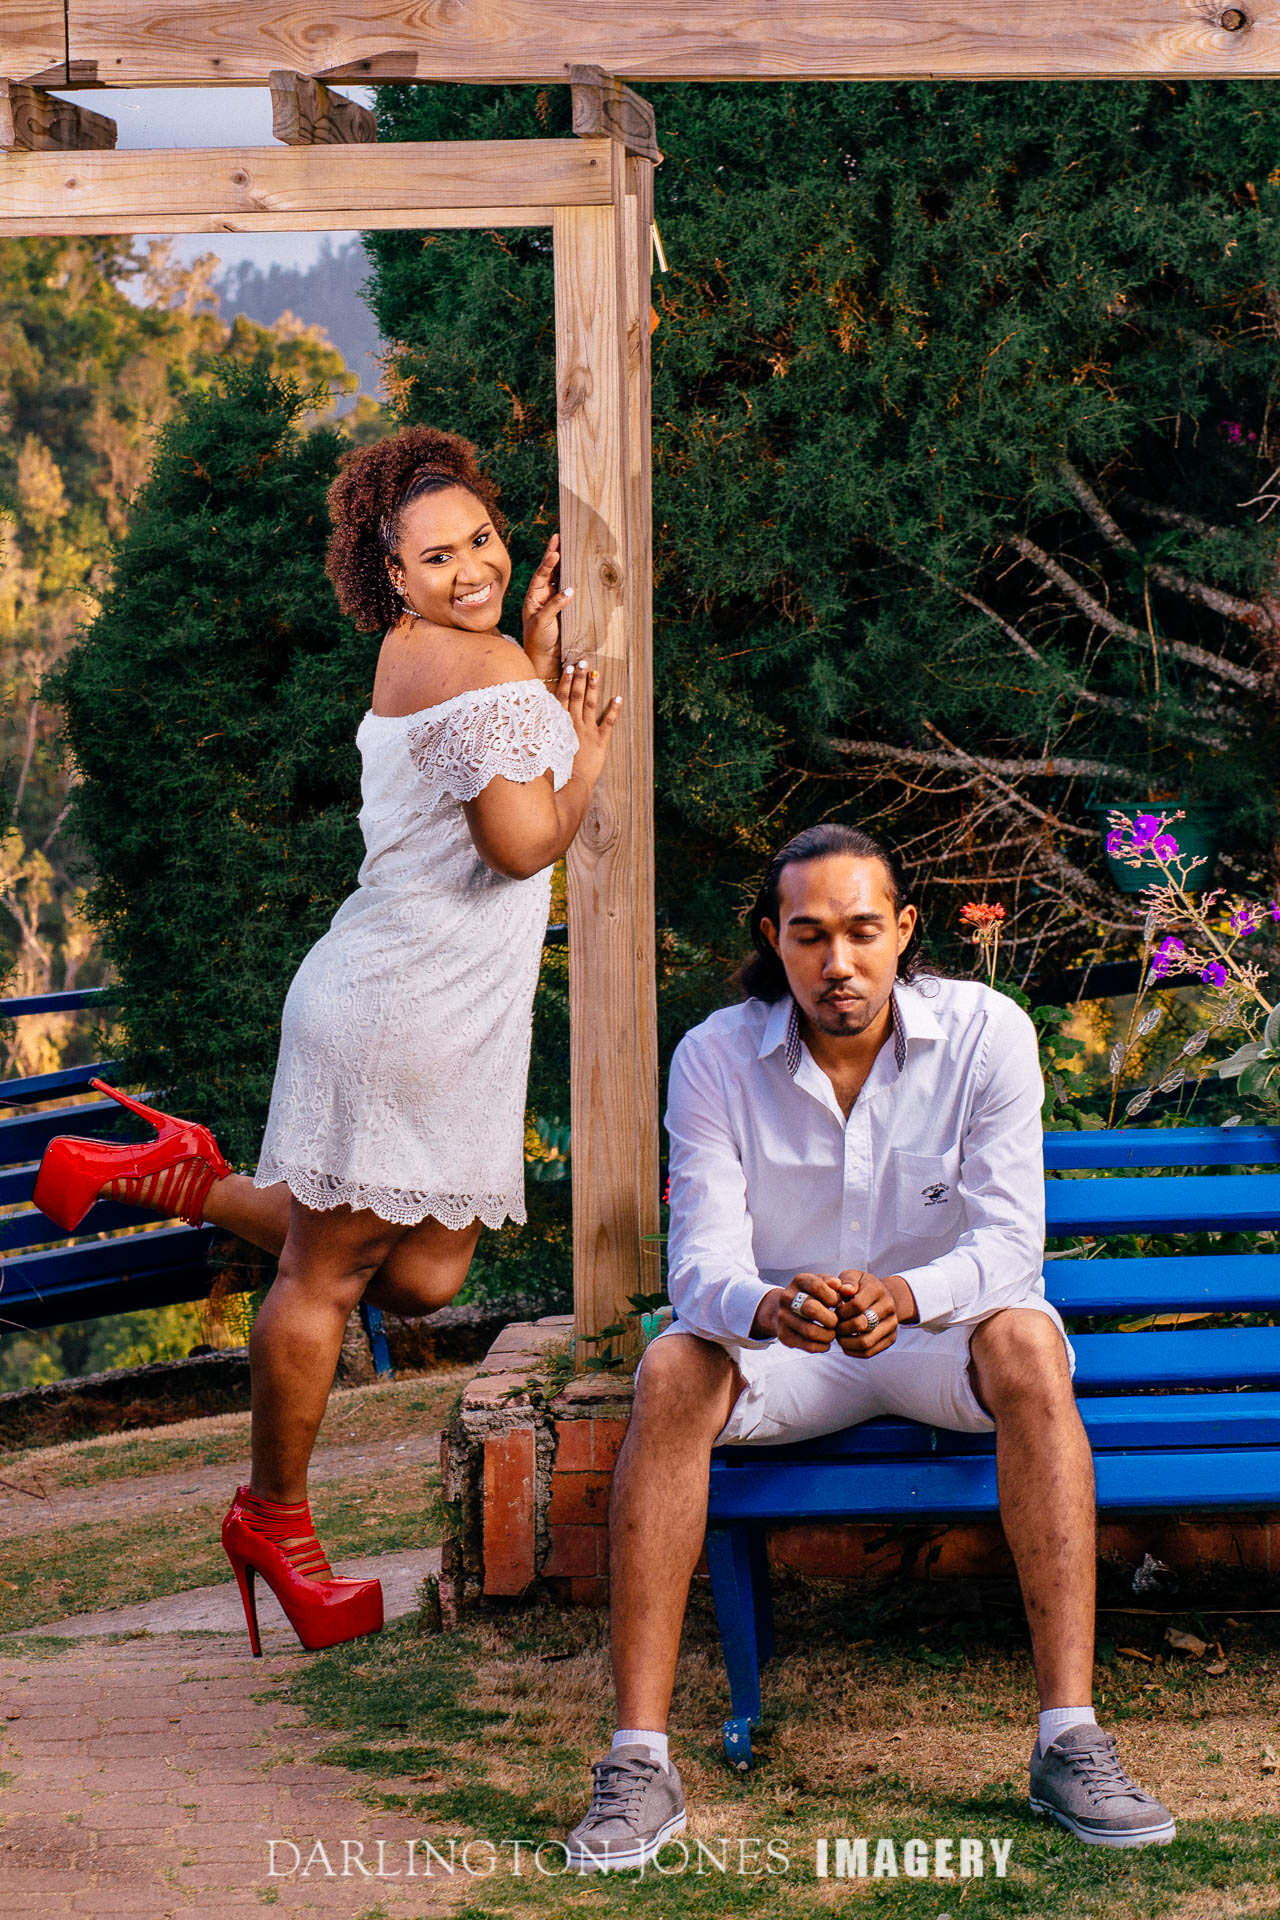 Engaged Couple Man Sitting on Blue Bench Lady in Red Shoes Standing